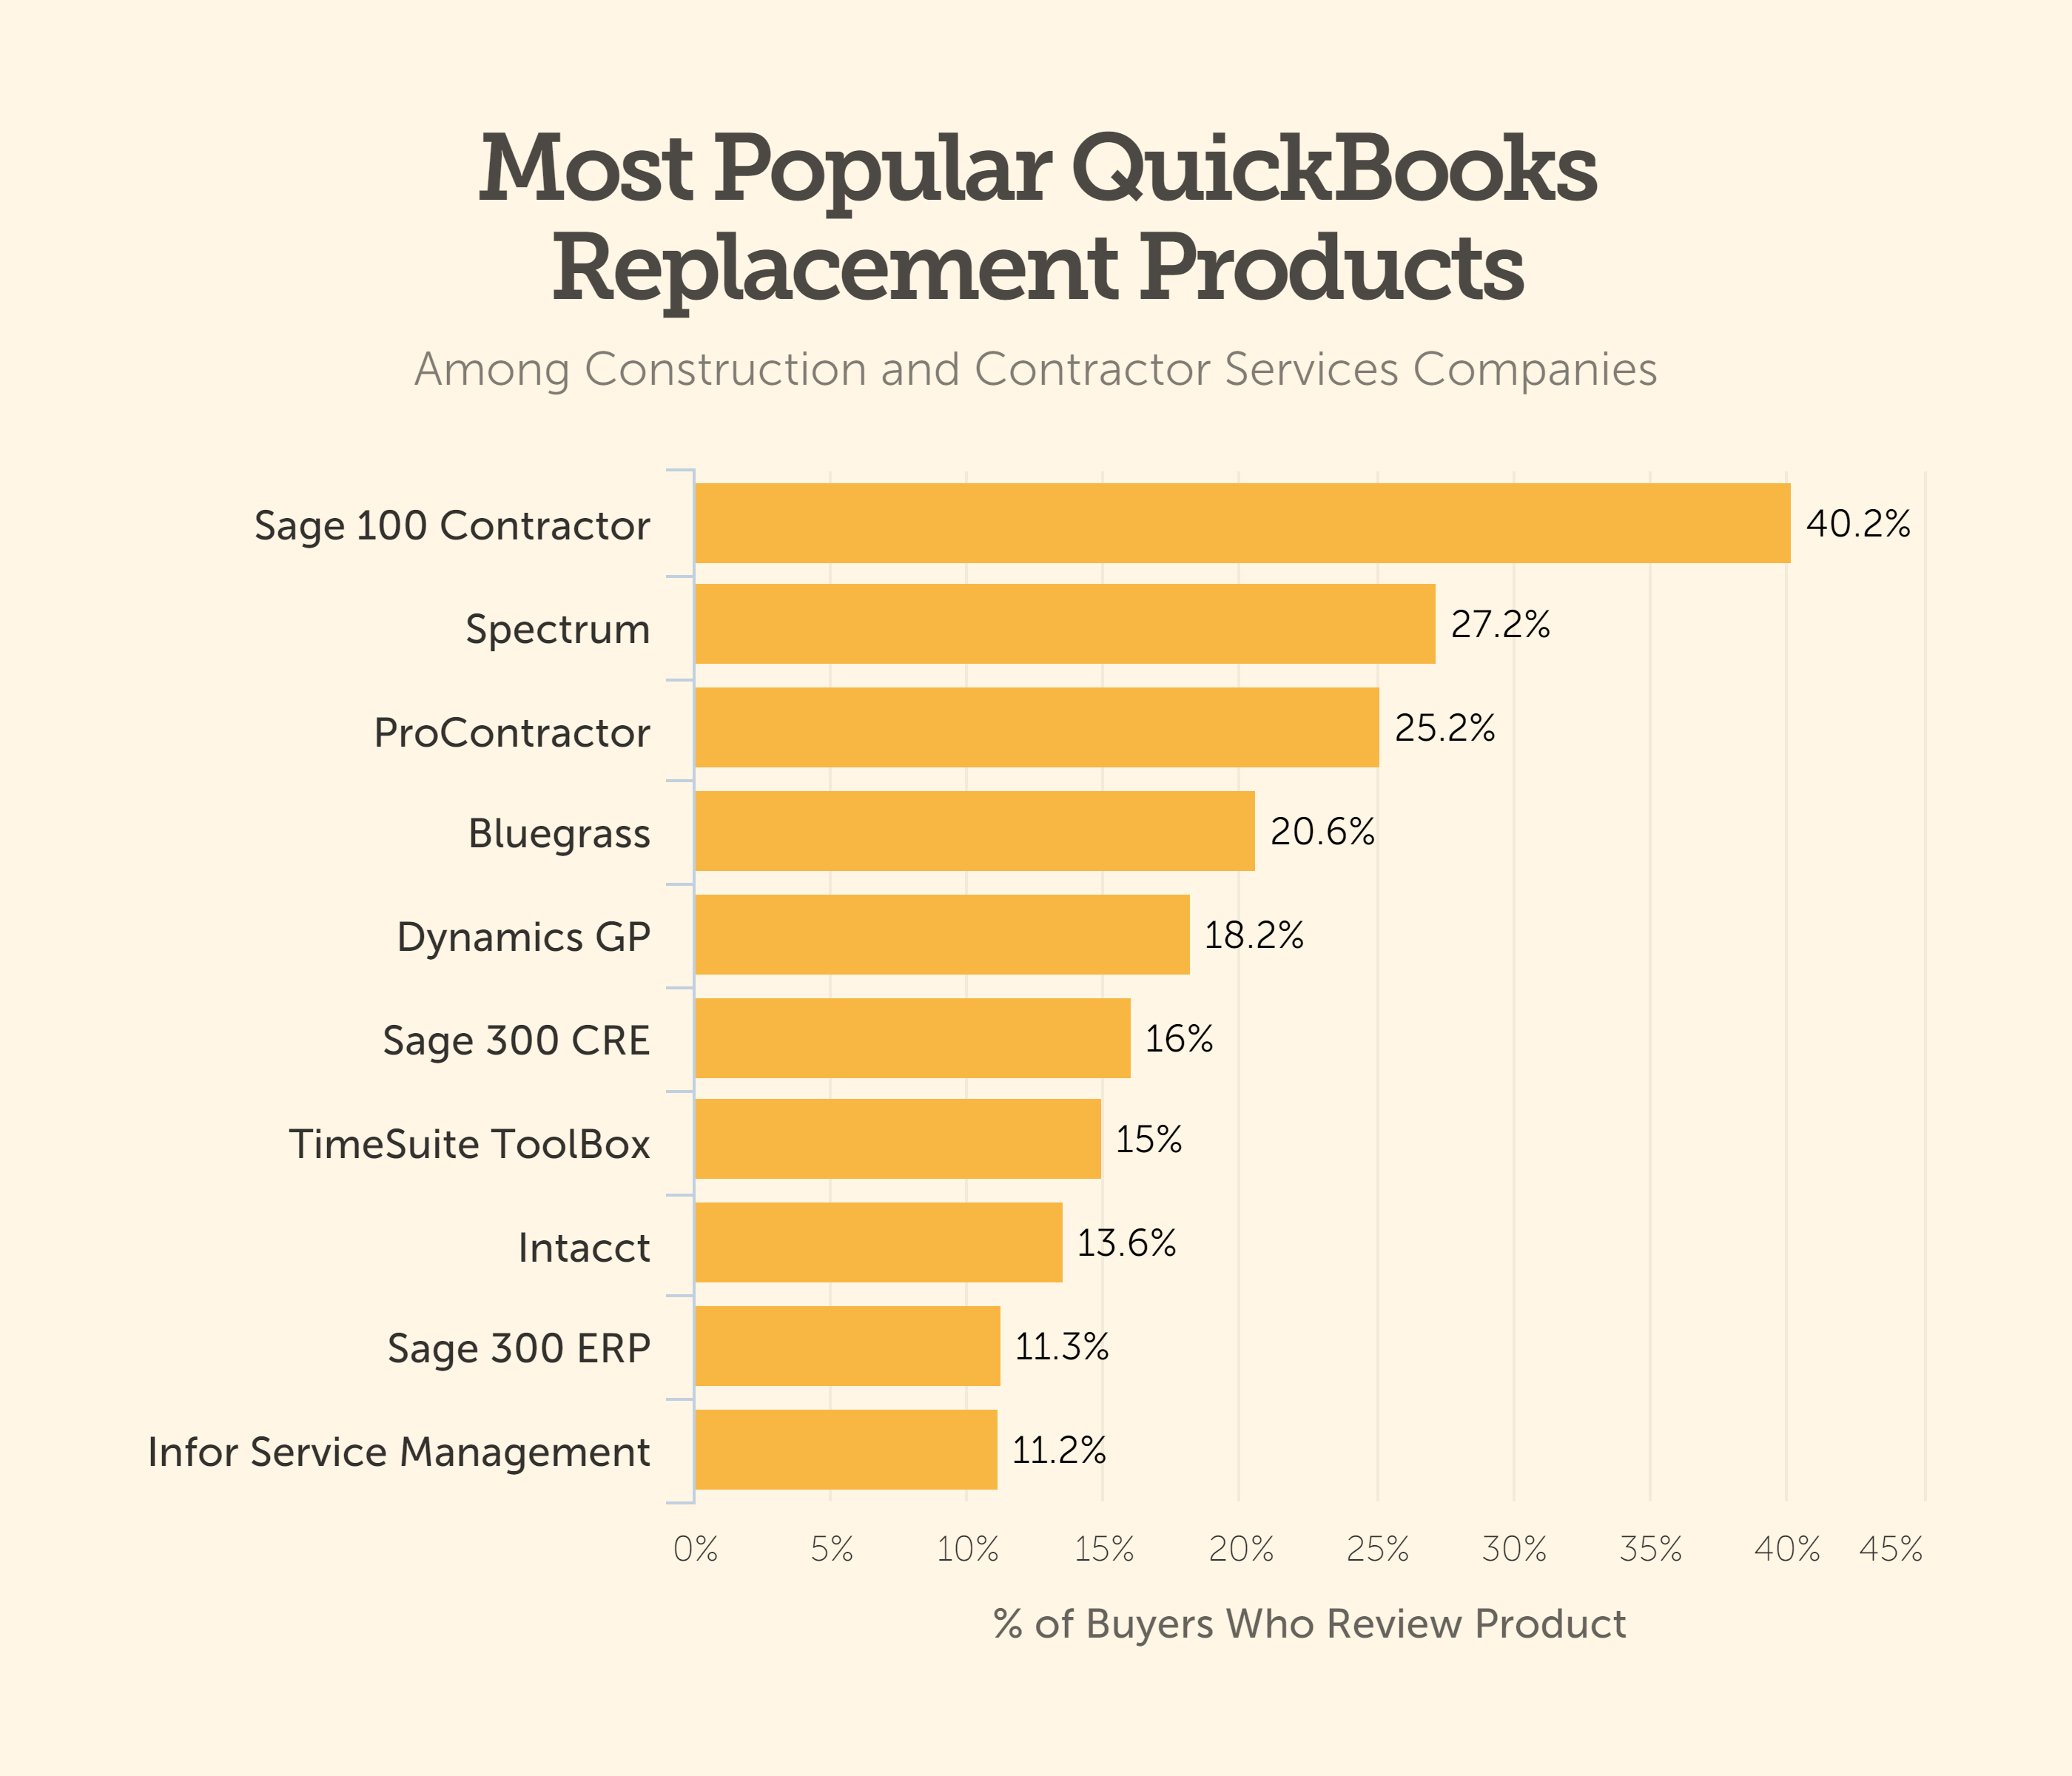 Most popular QuickBooks replacement products fro construction businesses